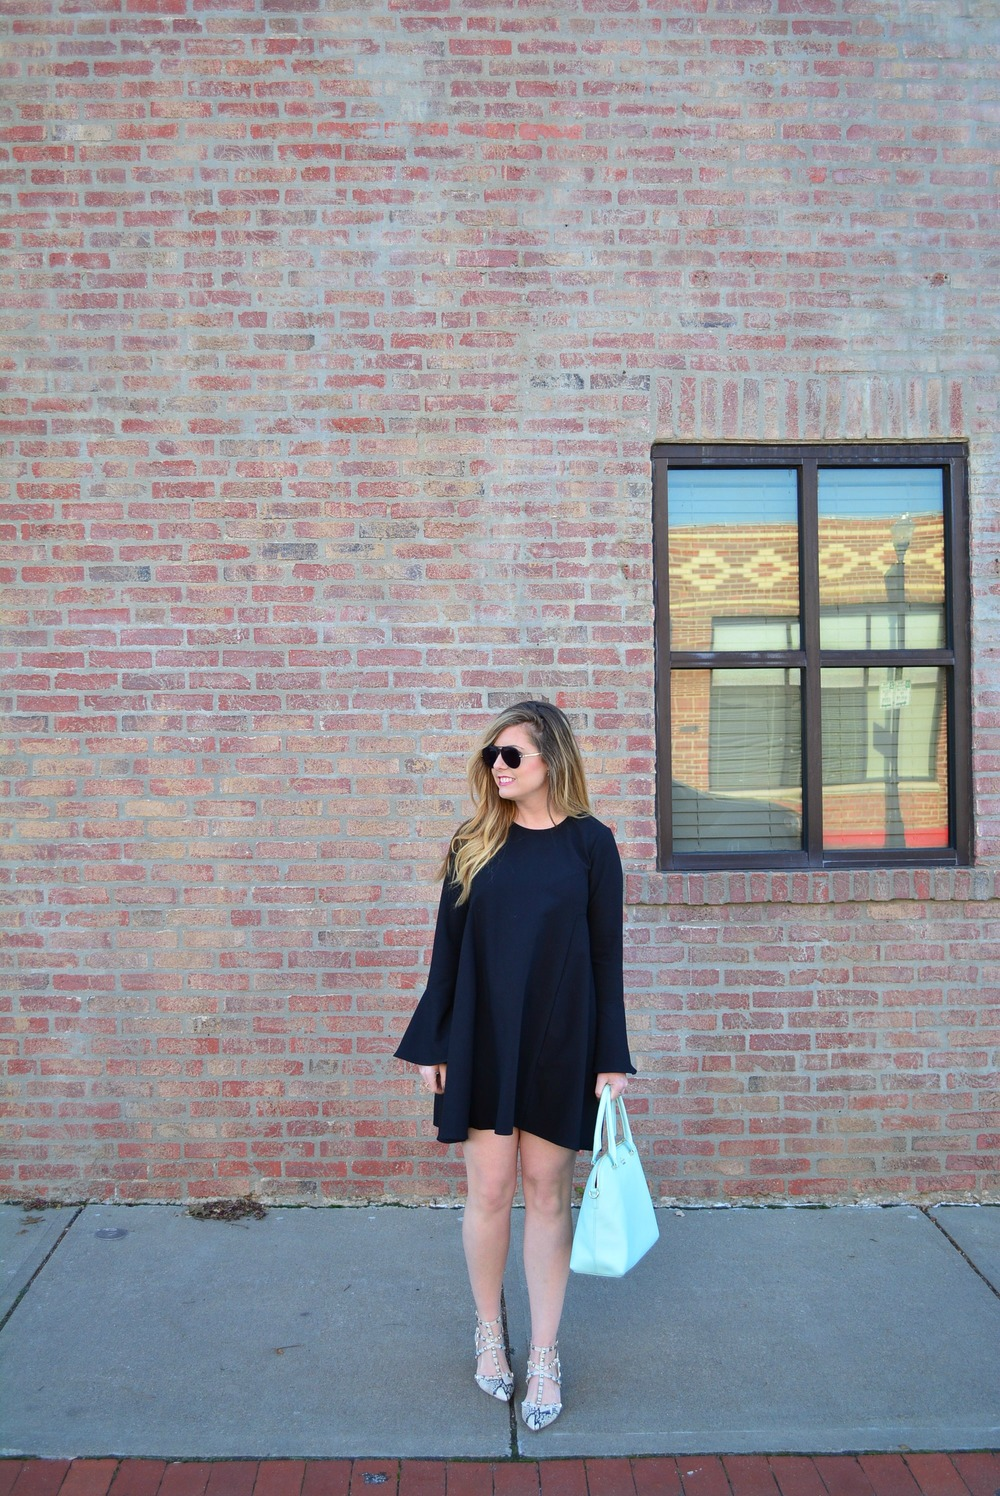 Black bell sleeve dress with snakeskin pumps and Kate Spade bag